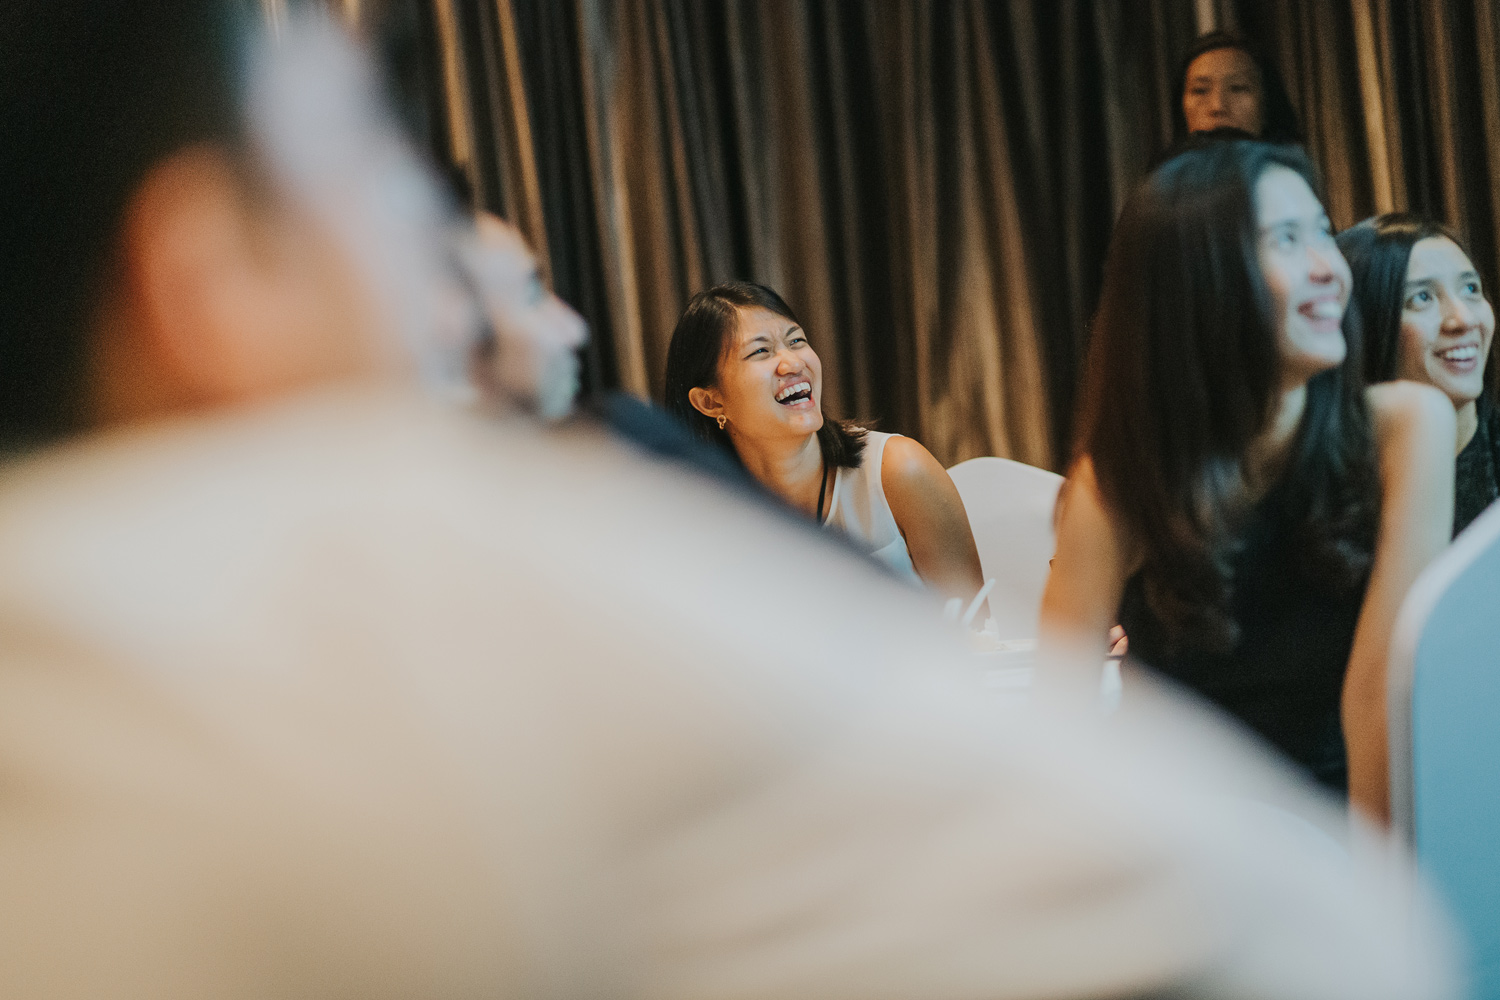 bittersweet photography Singapore wedding photographer jonathan 115